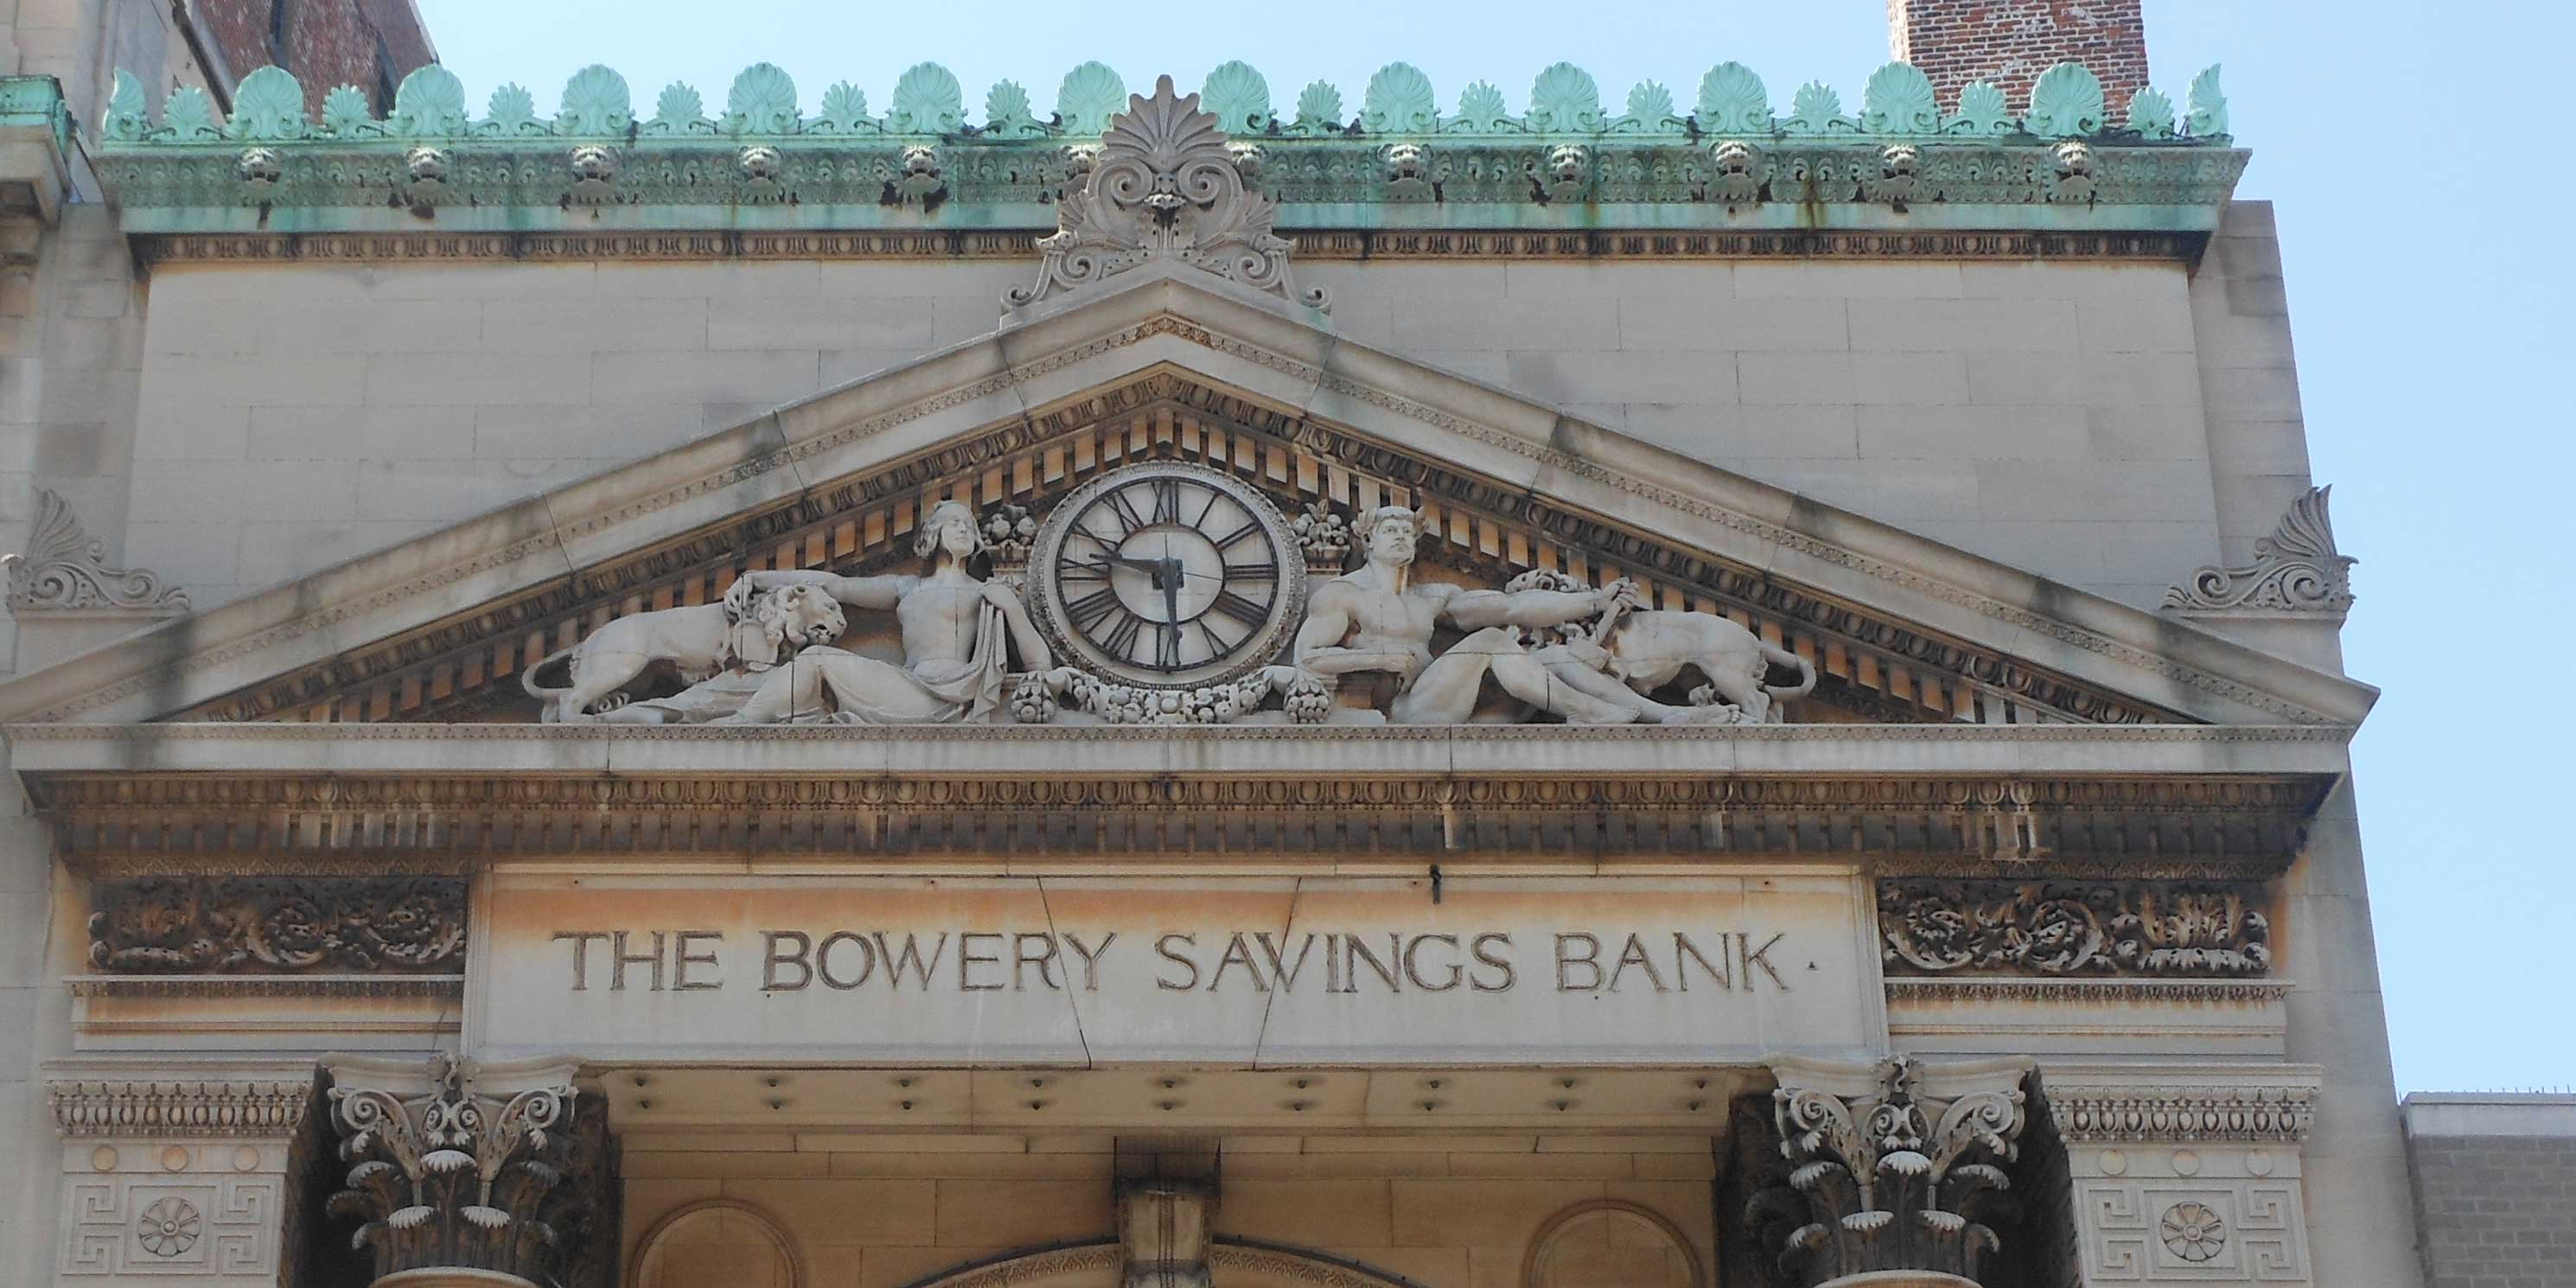 carved stone exterior of Bowery Savings Bank